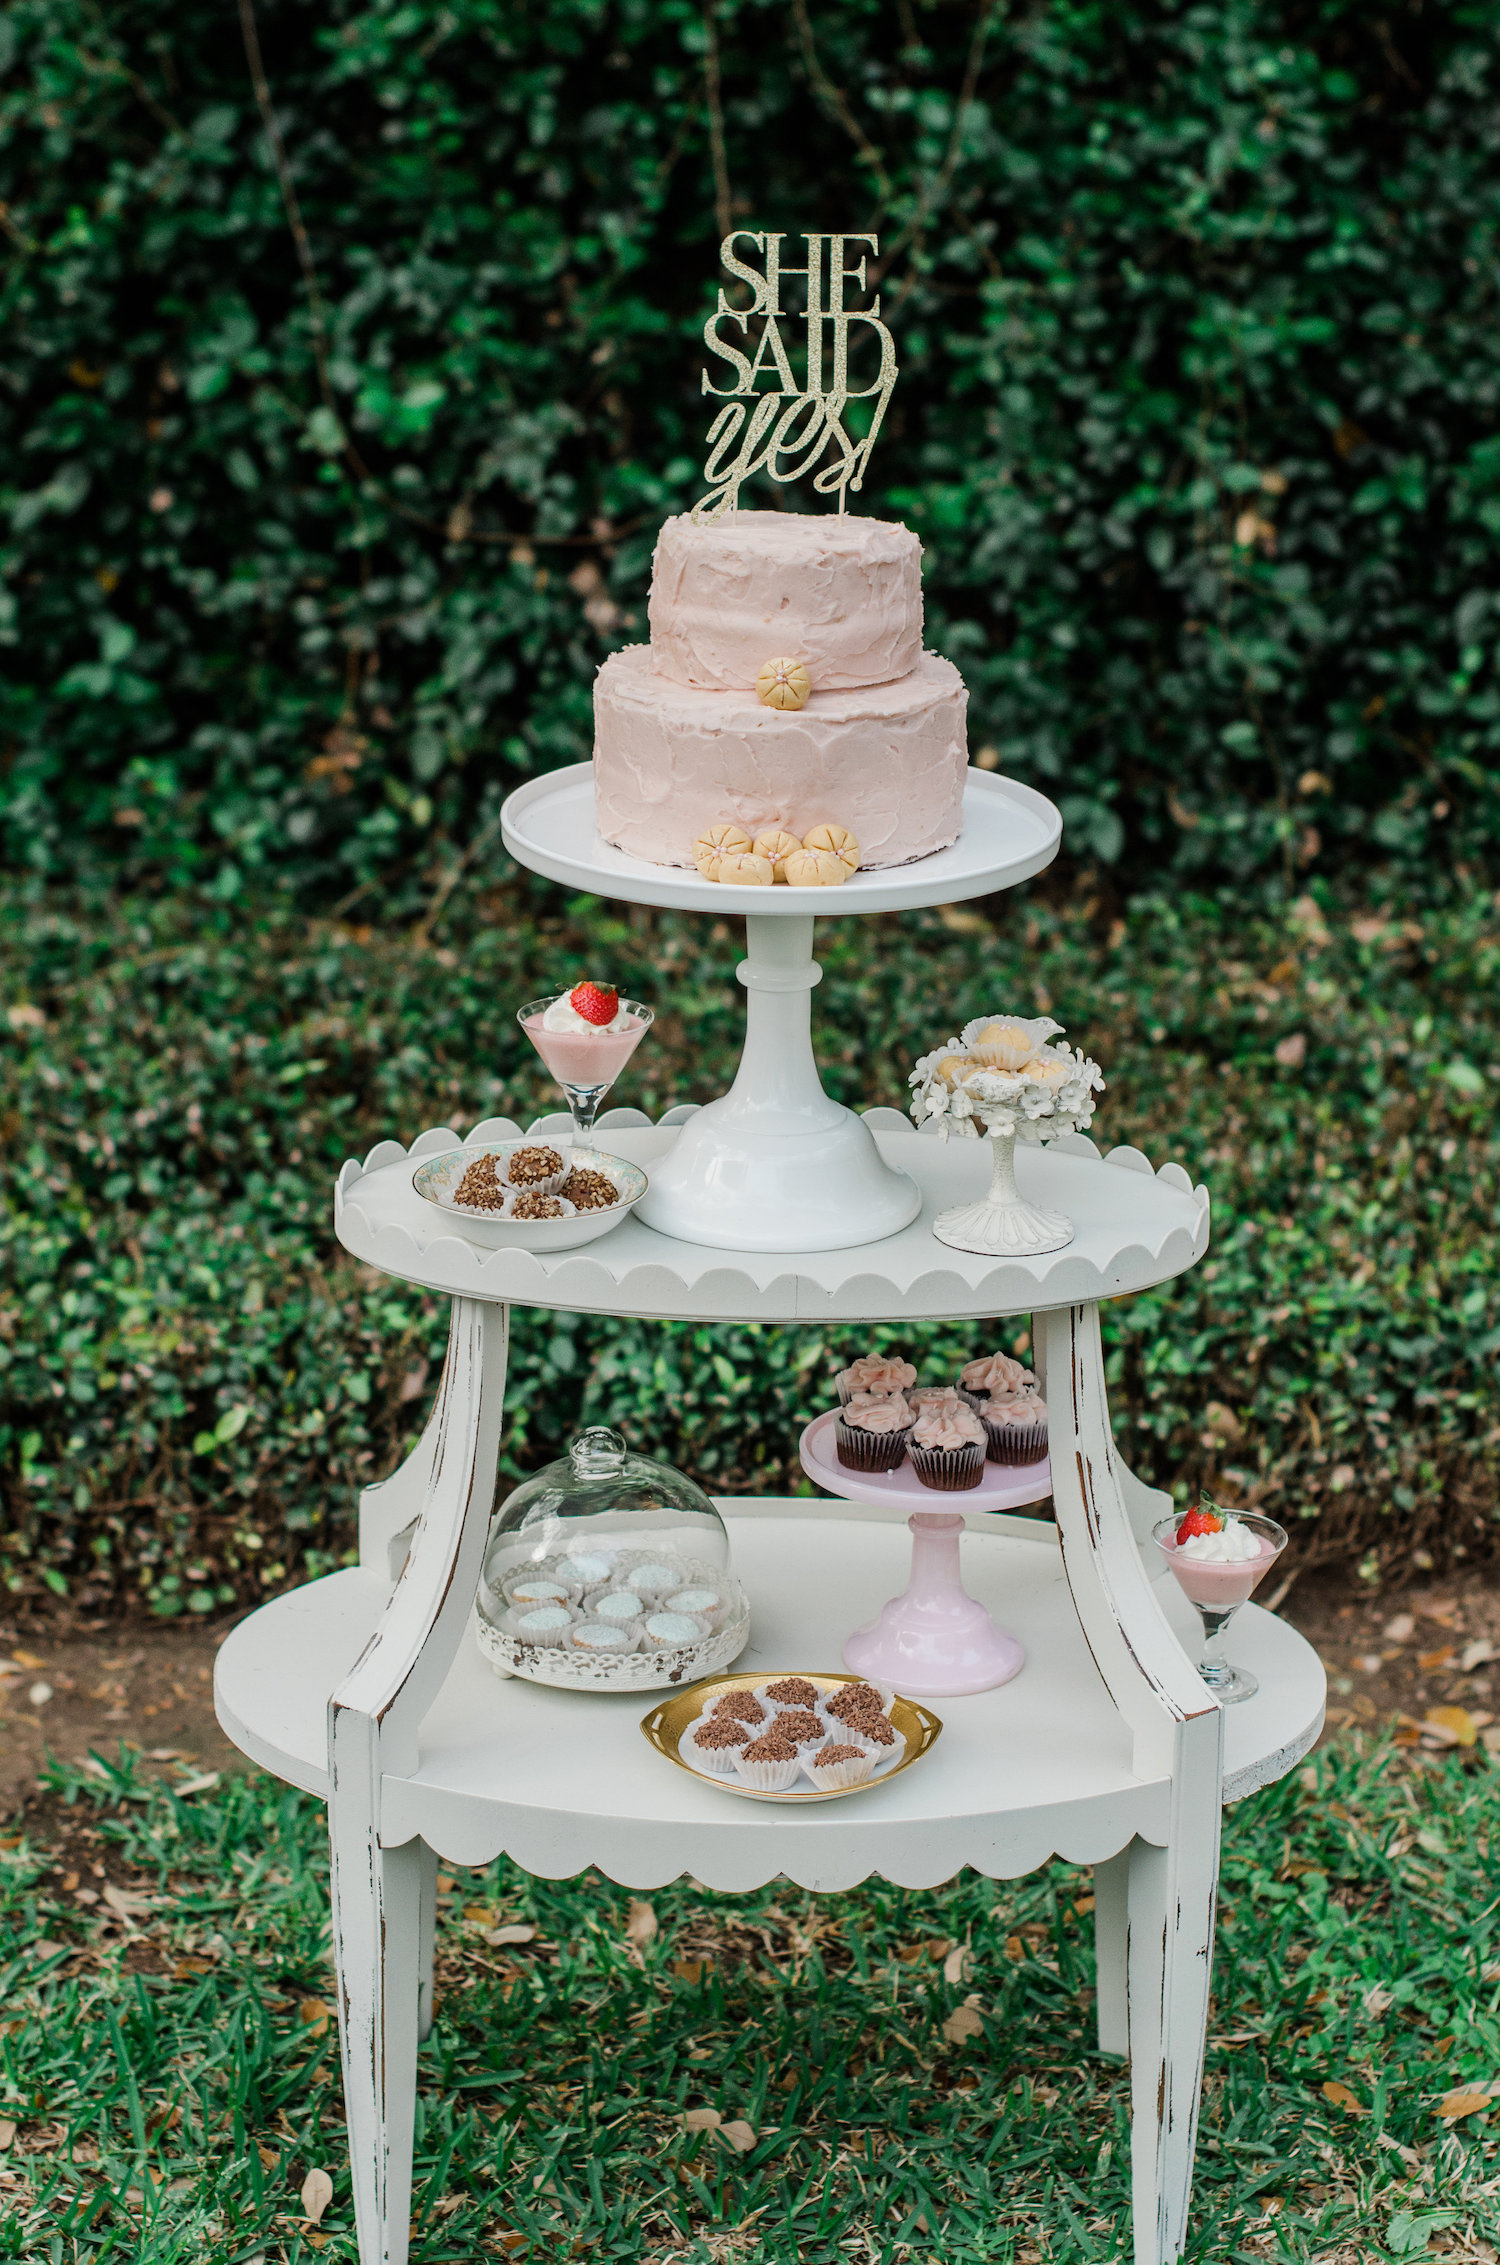 Super sweet dessert station with tiers and a cake with a She Said Yes Gold Lettered Cake Topper — Click to see 8 DIY Wedding Ideas for a Springtime Bridal Shower Brunch — Part of the 37 Creative DIY Wedding Ideas for Spring as seen on www.BrendasWeddingBlog.com